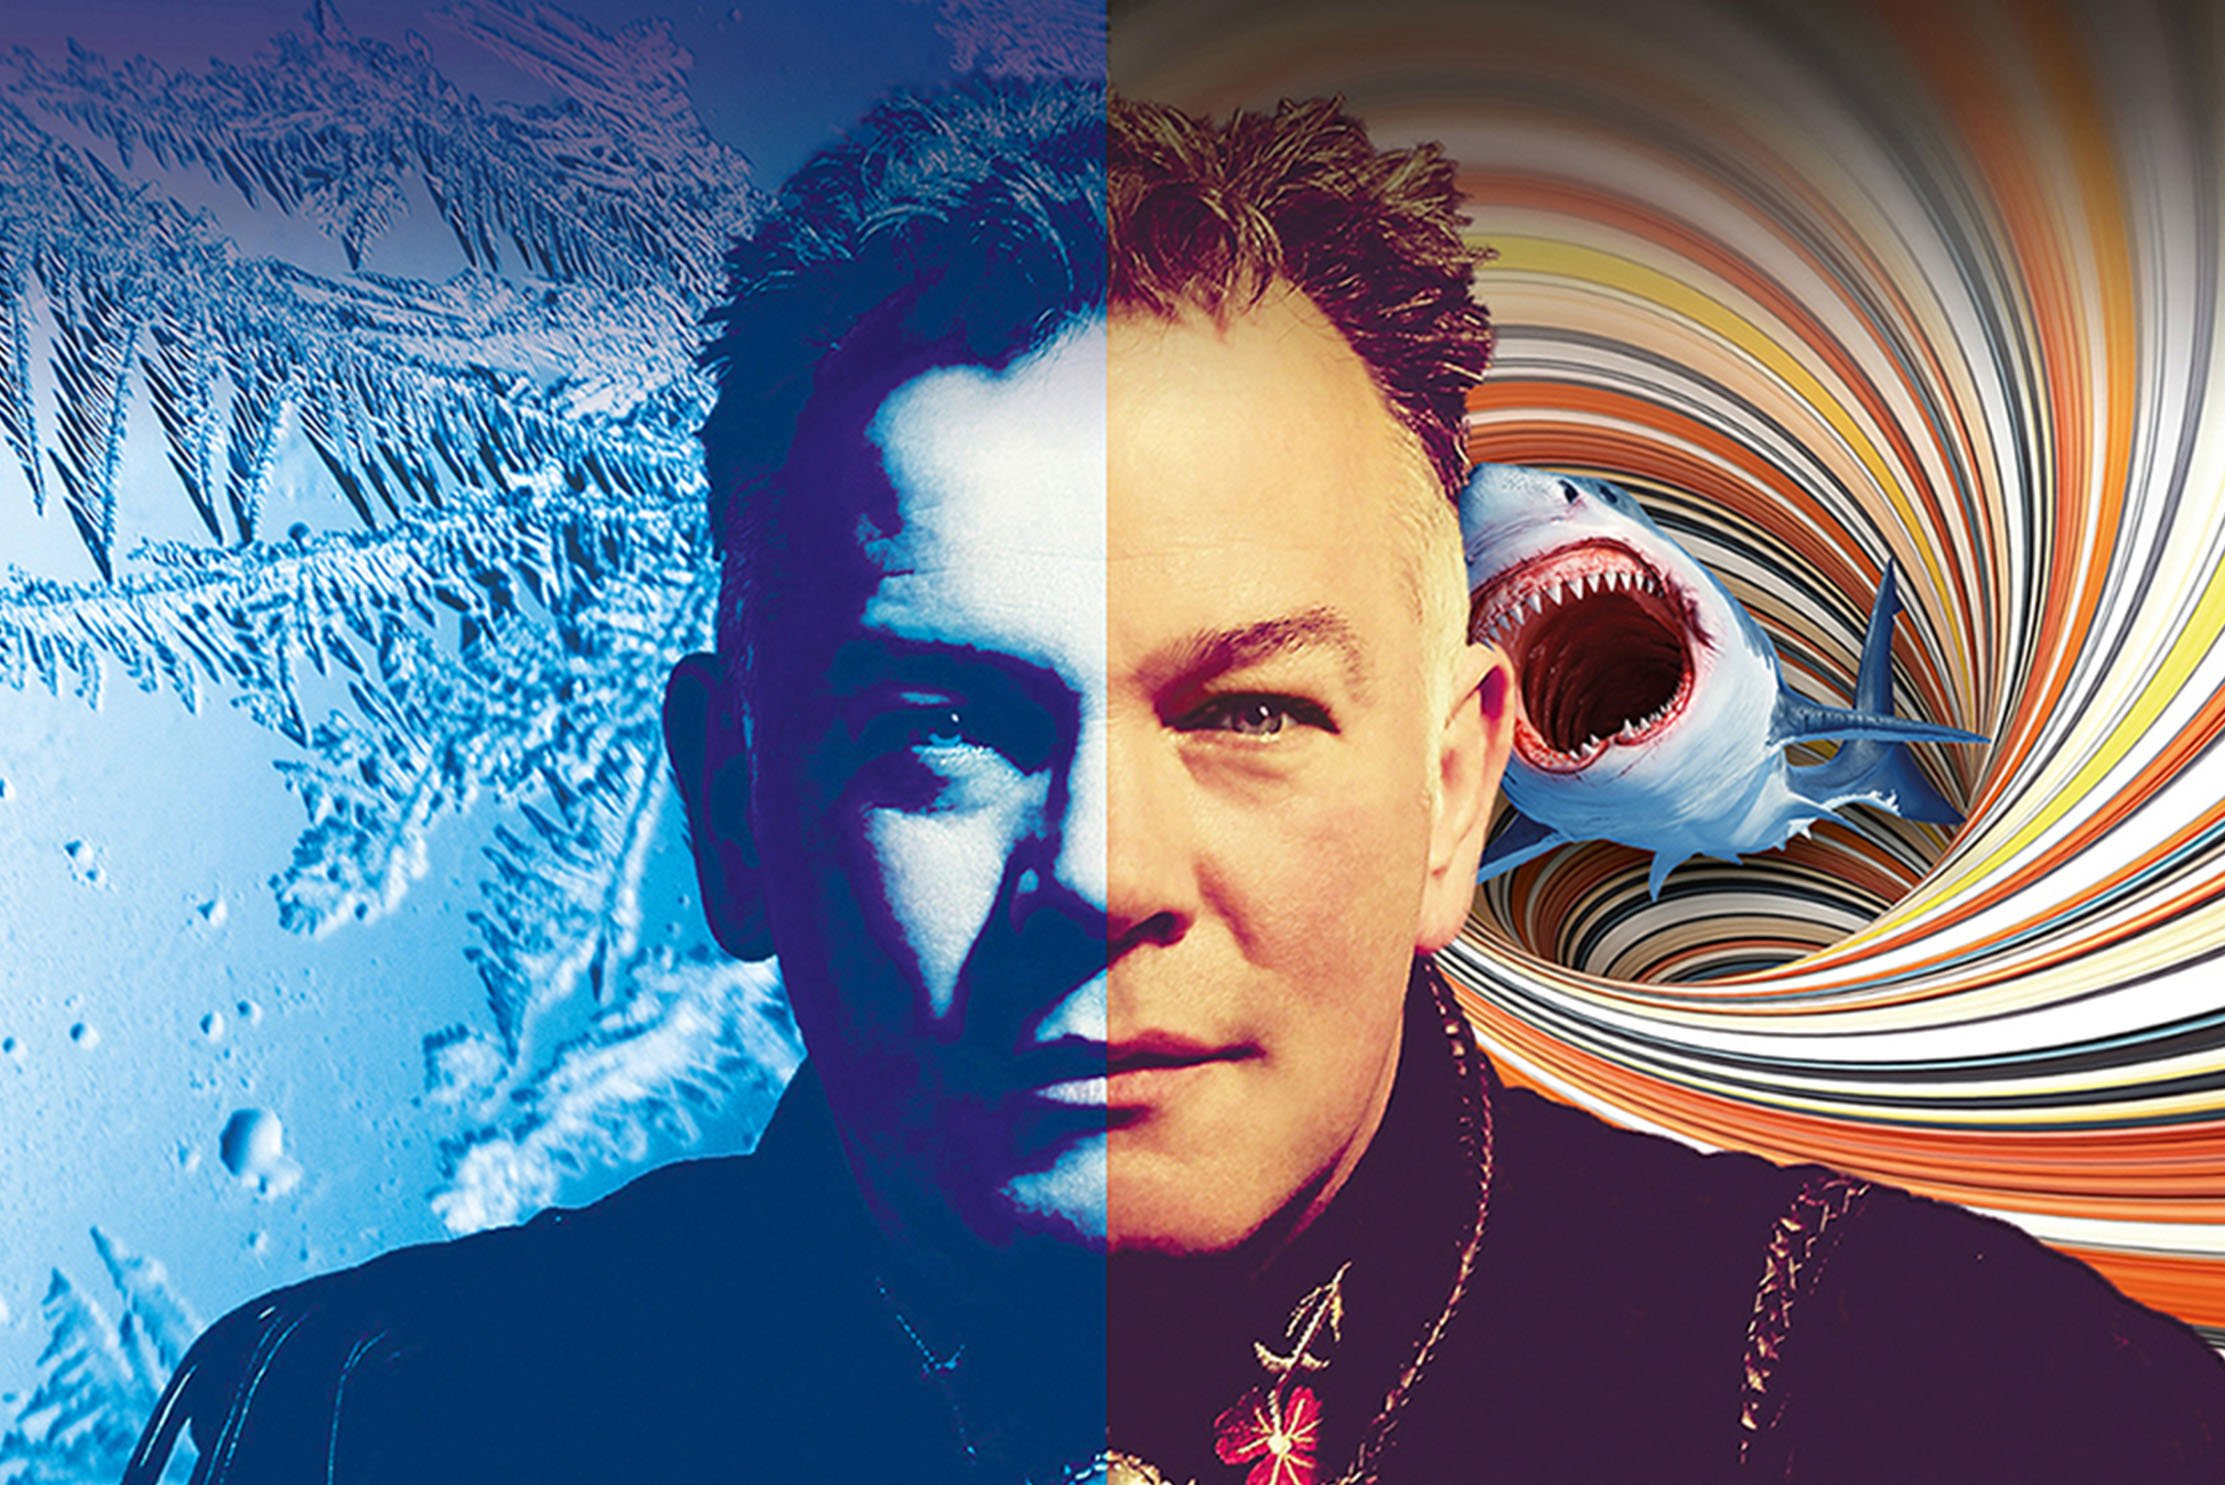 BN1 Magazine and Brighton Dome are giving away a pair of tickets to Stewart Lee's performance of Snowflake/Tornado at Brighton Dome, along with a copy a copy of his acclaimed new book, March Of The Lemmings (Brexit In Print & Performance 2016-2019.